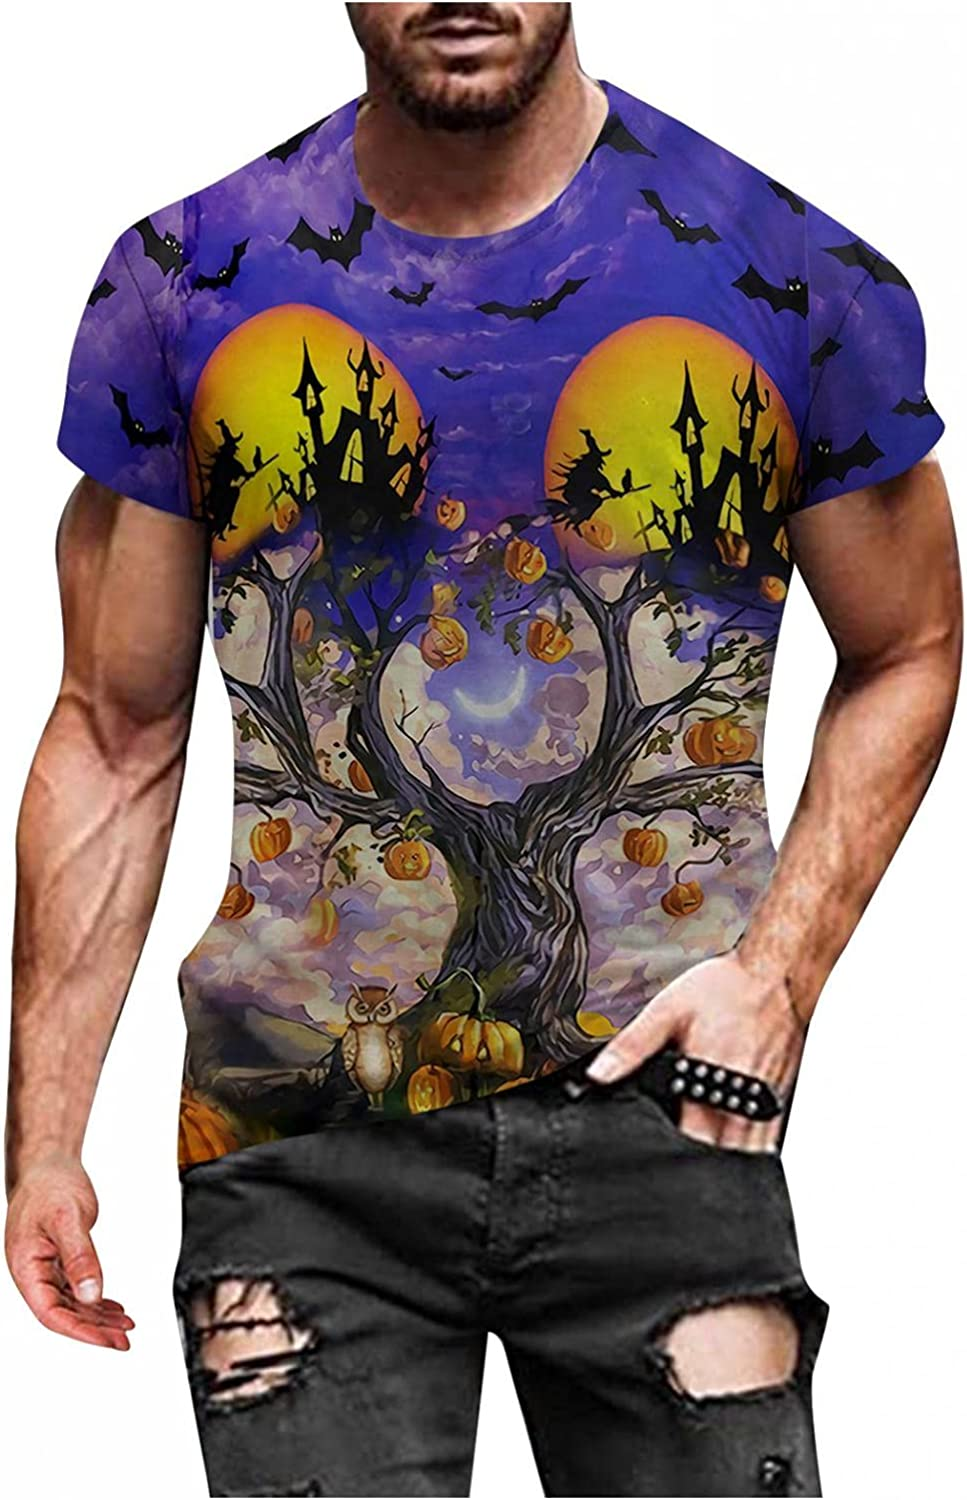 Aayomet Men's T Shirts Halloween Printed Long Sleeve Round Neck Sweatshirts Casual Workout Sport Tee Shirts Blouses Tops